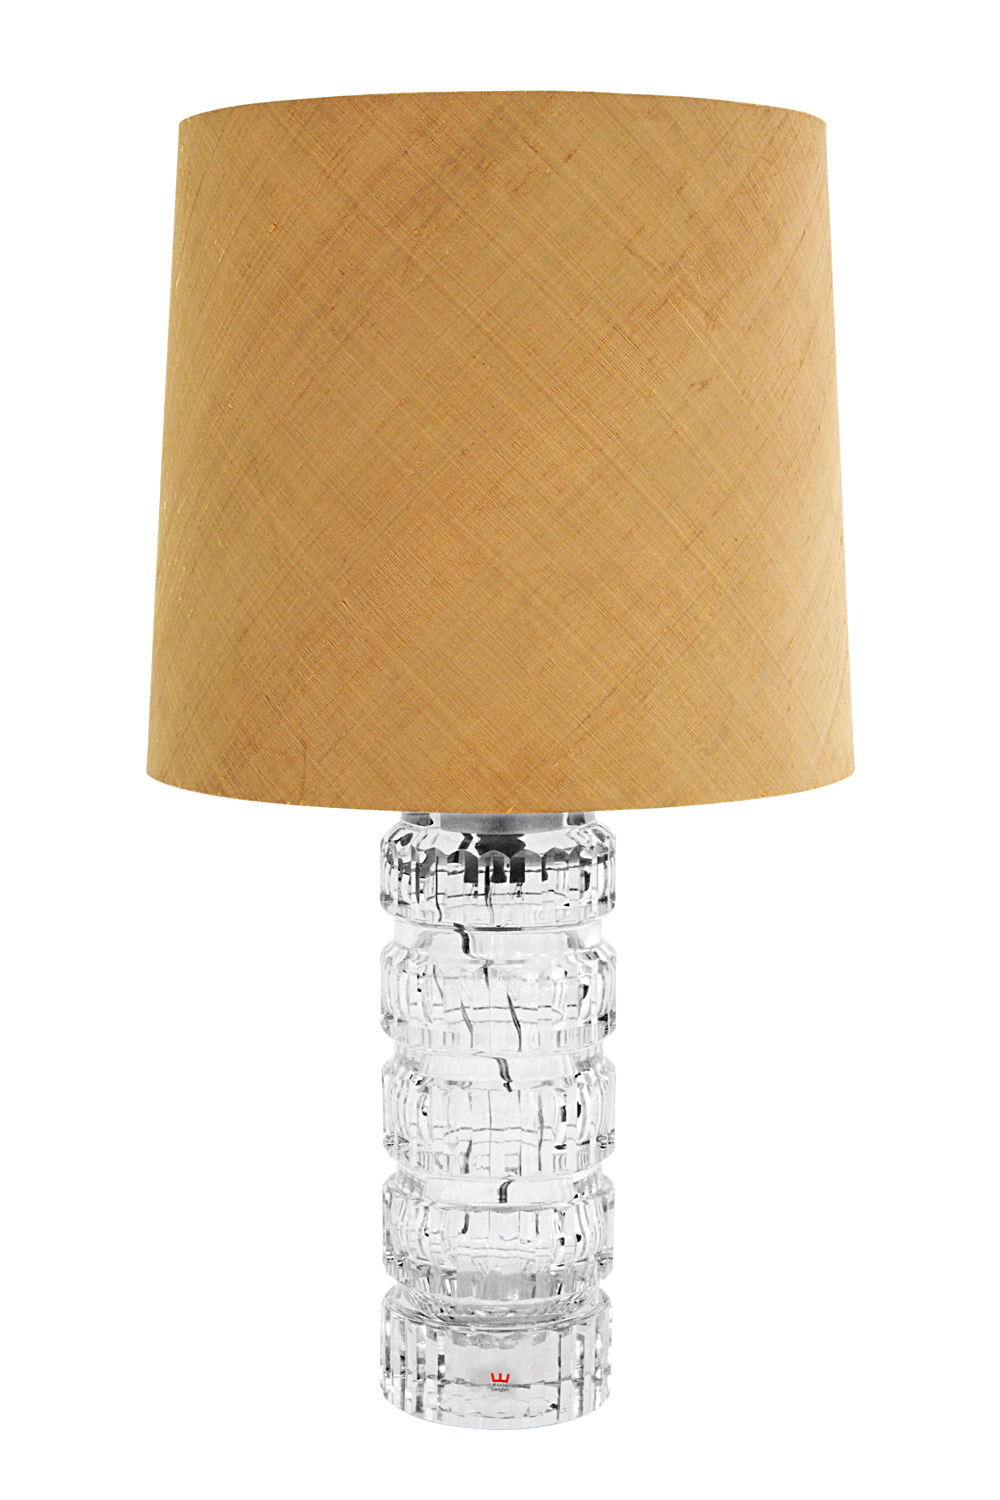 Kosta Boda 35 cut crystal lamp tablelamp201 hires.jpg